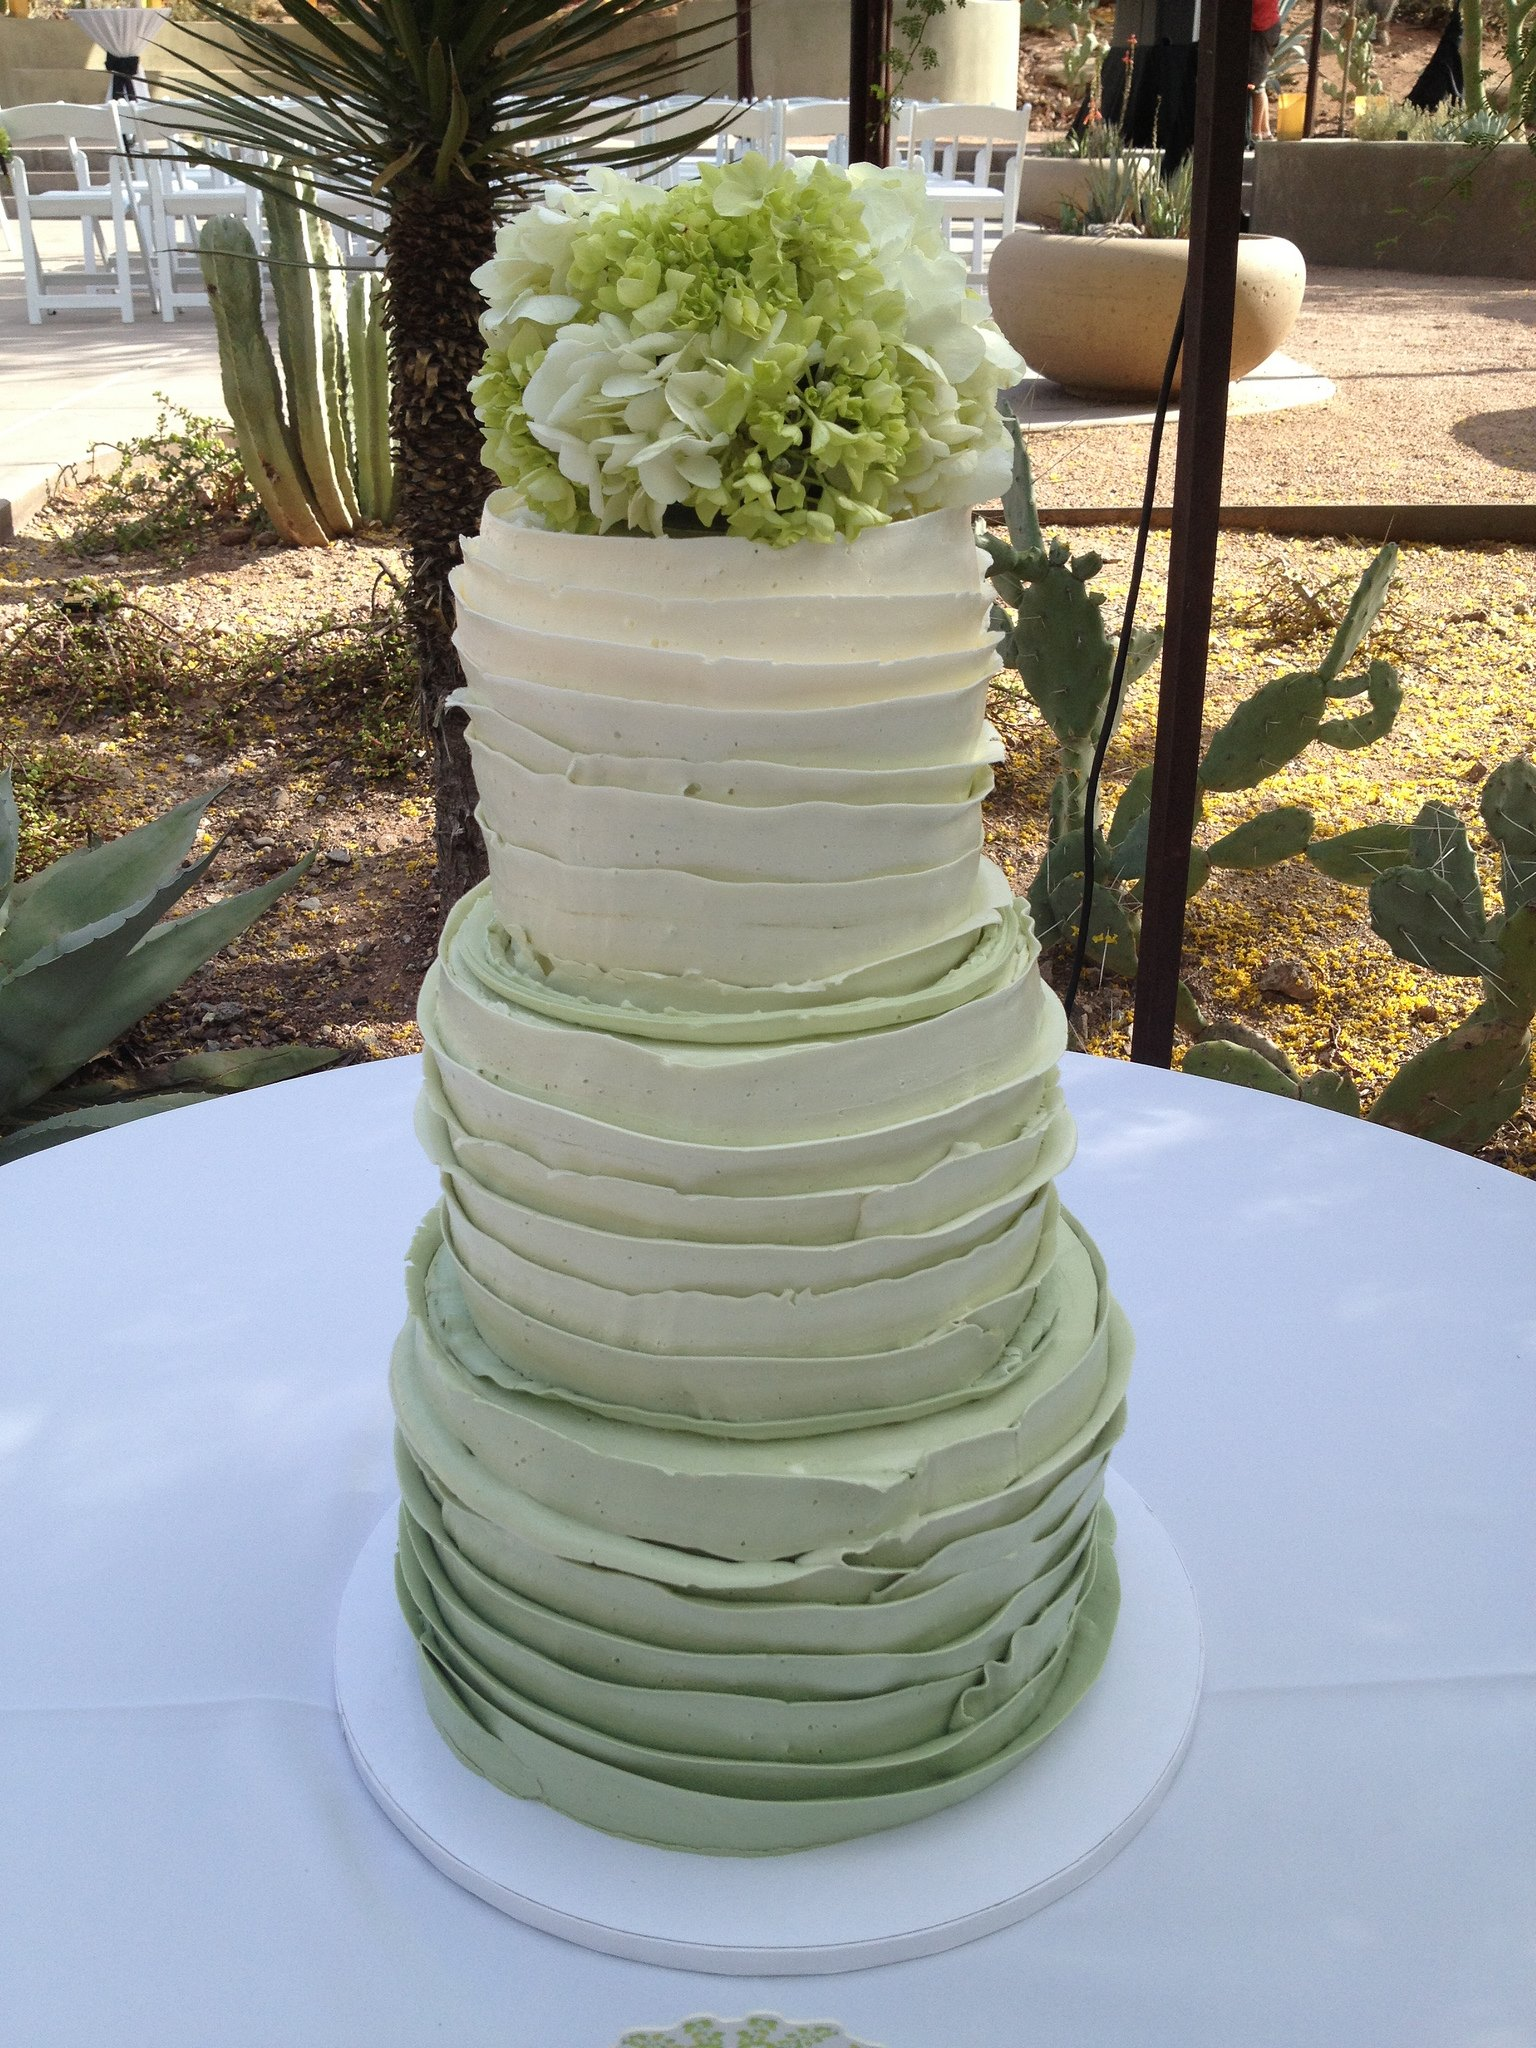 beautiful wedding cakes phoenix      Kickasskakes s Blog 1782280 958008950886844 8636832001854532317 o